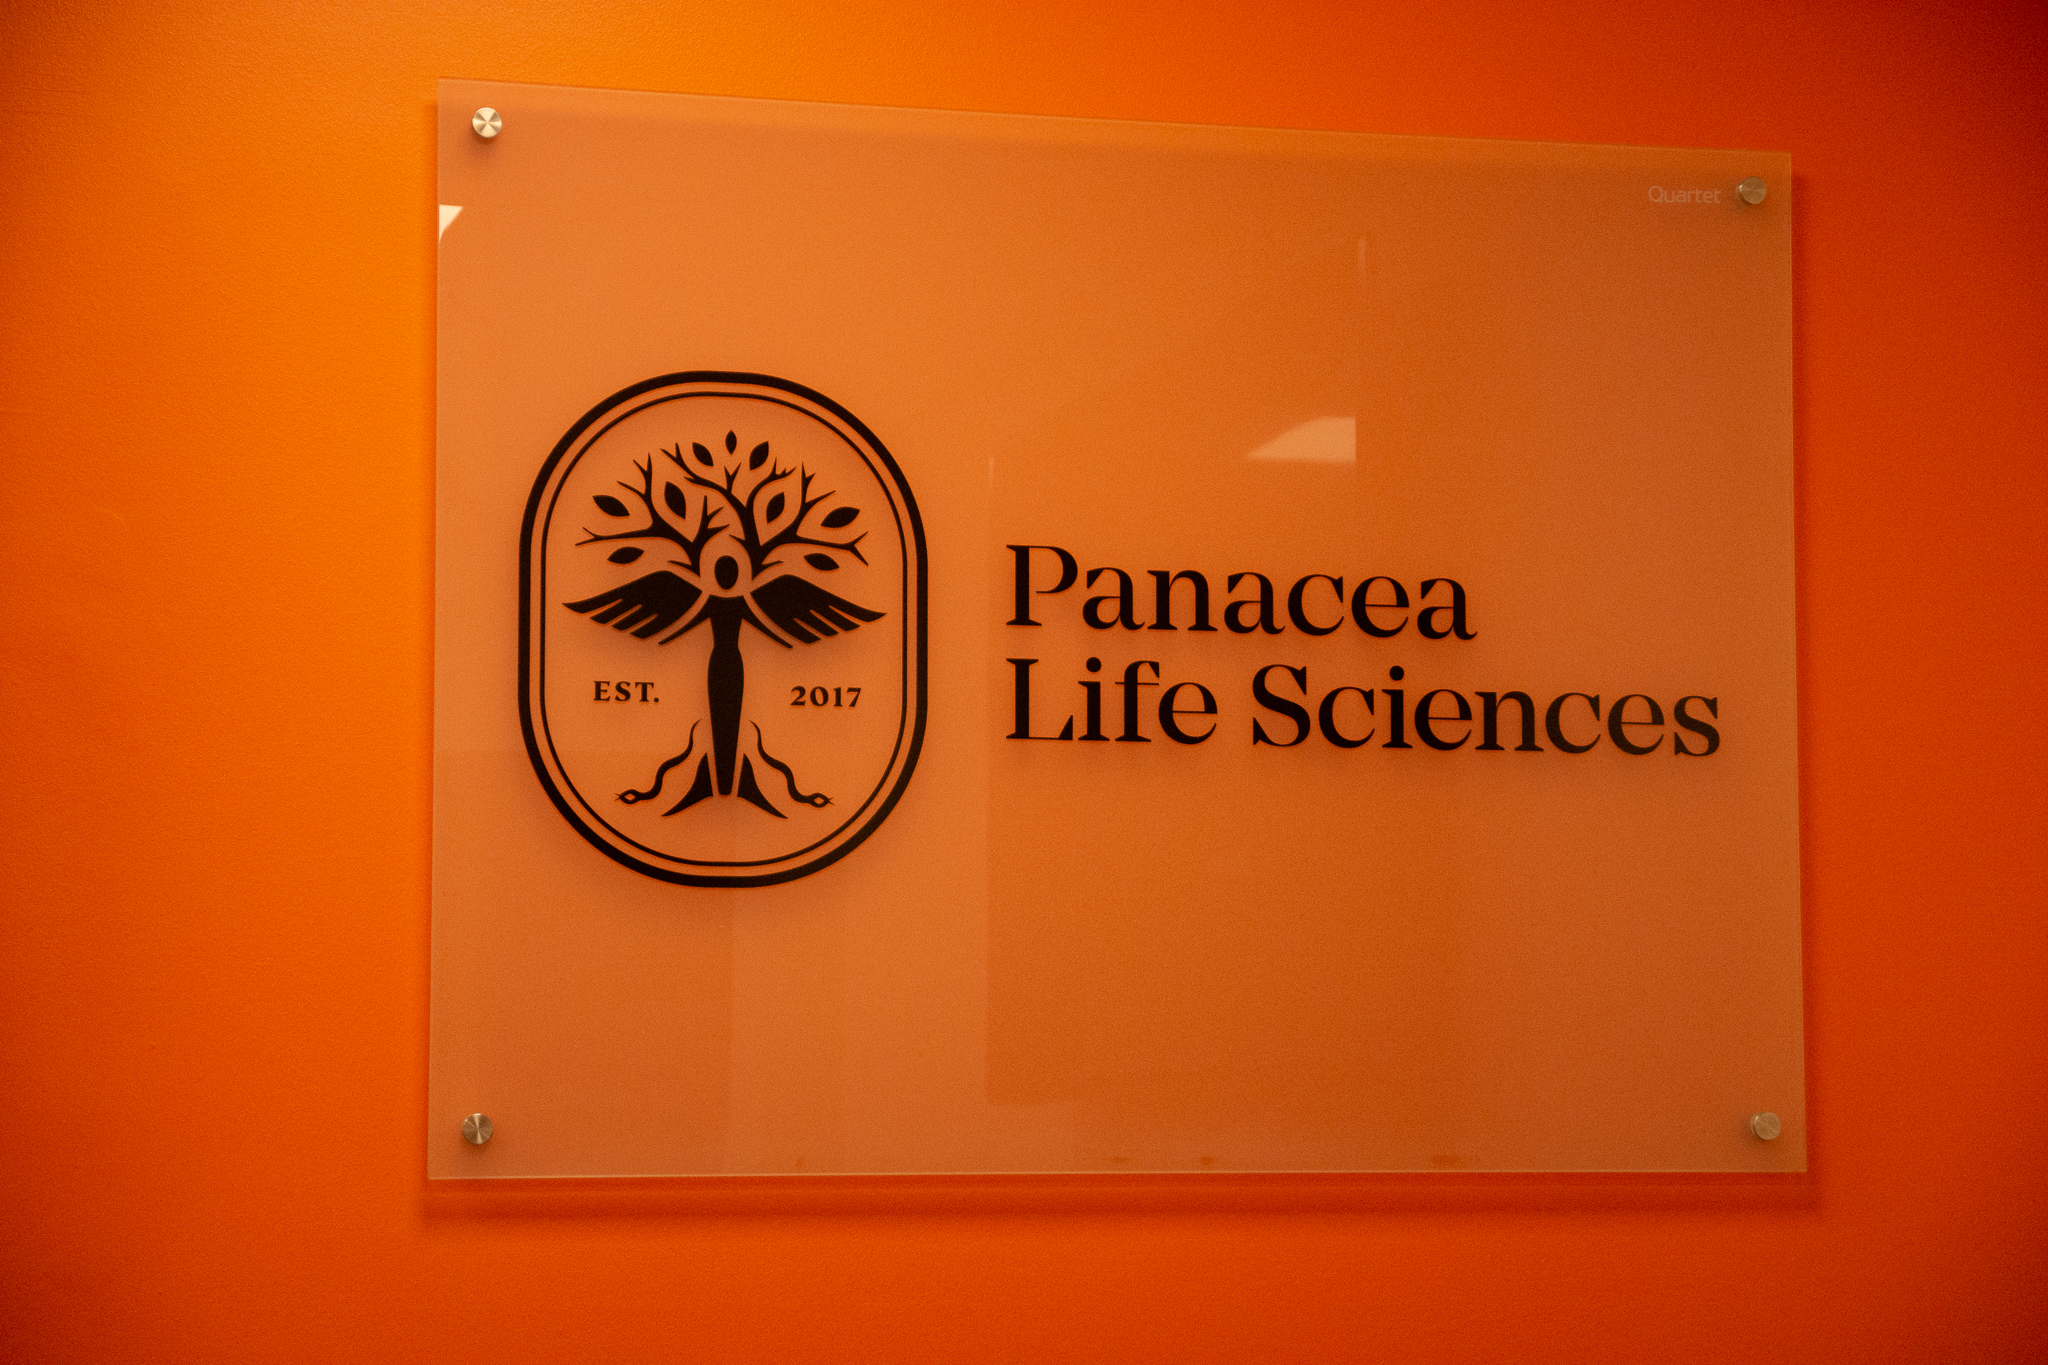 A sign of Panacea Life Sciences